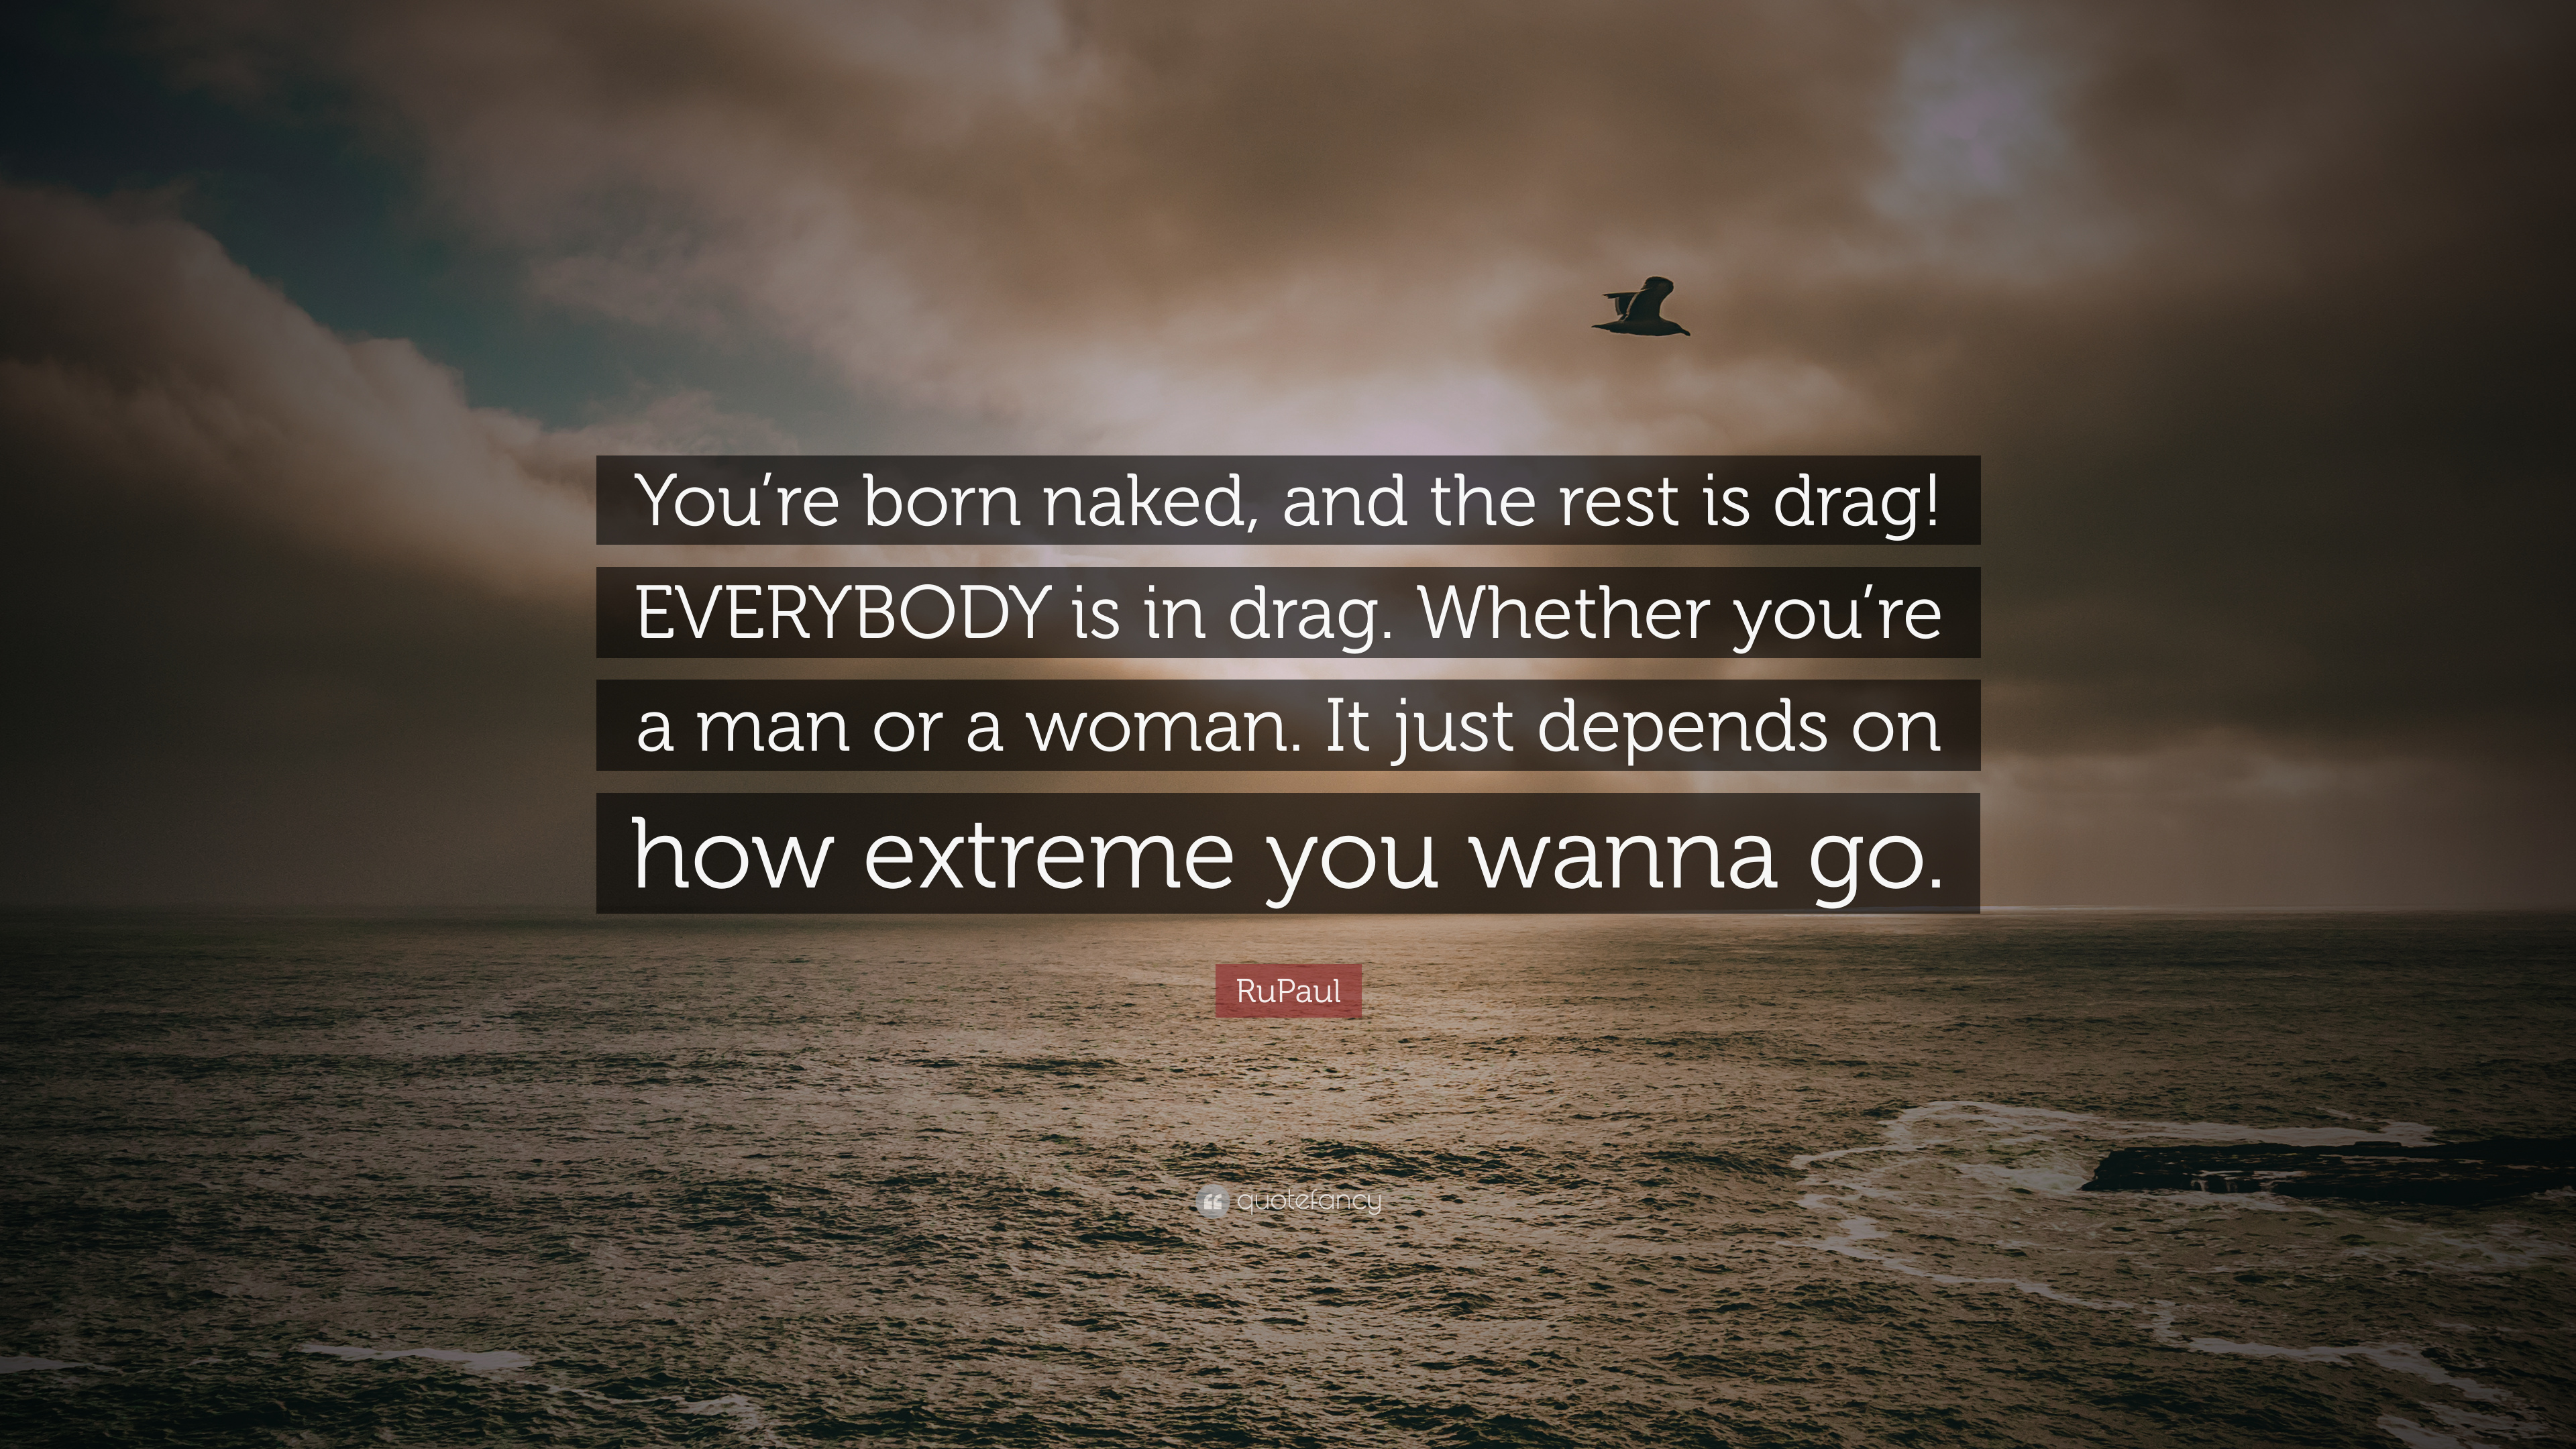 RuPaul Quote: Were born naked, and the rest is drag